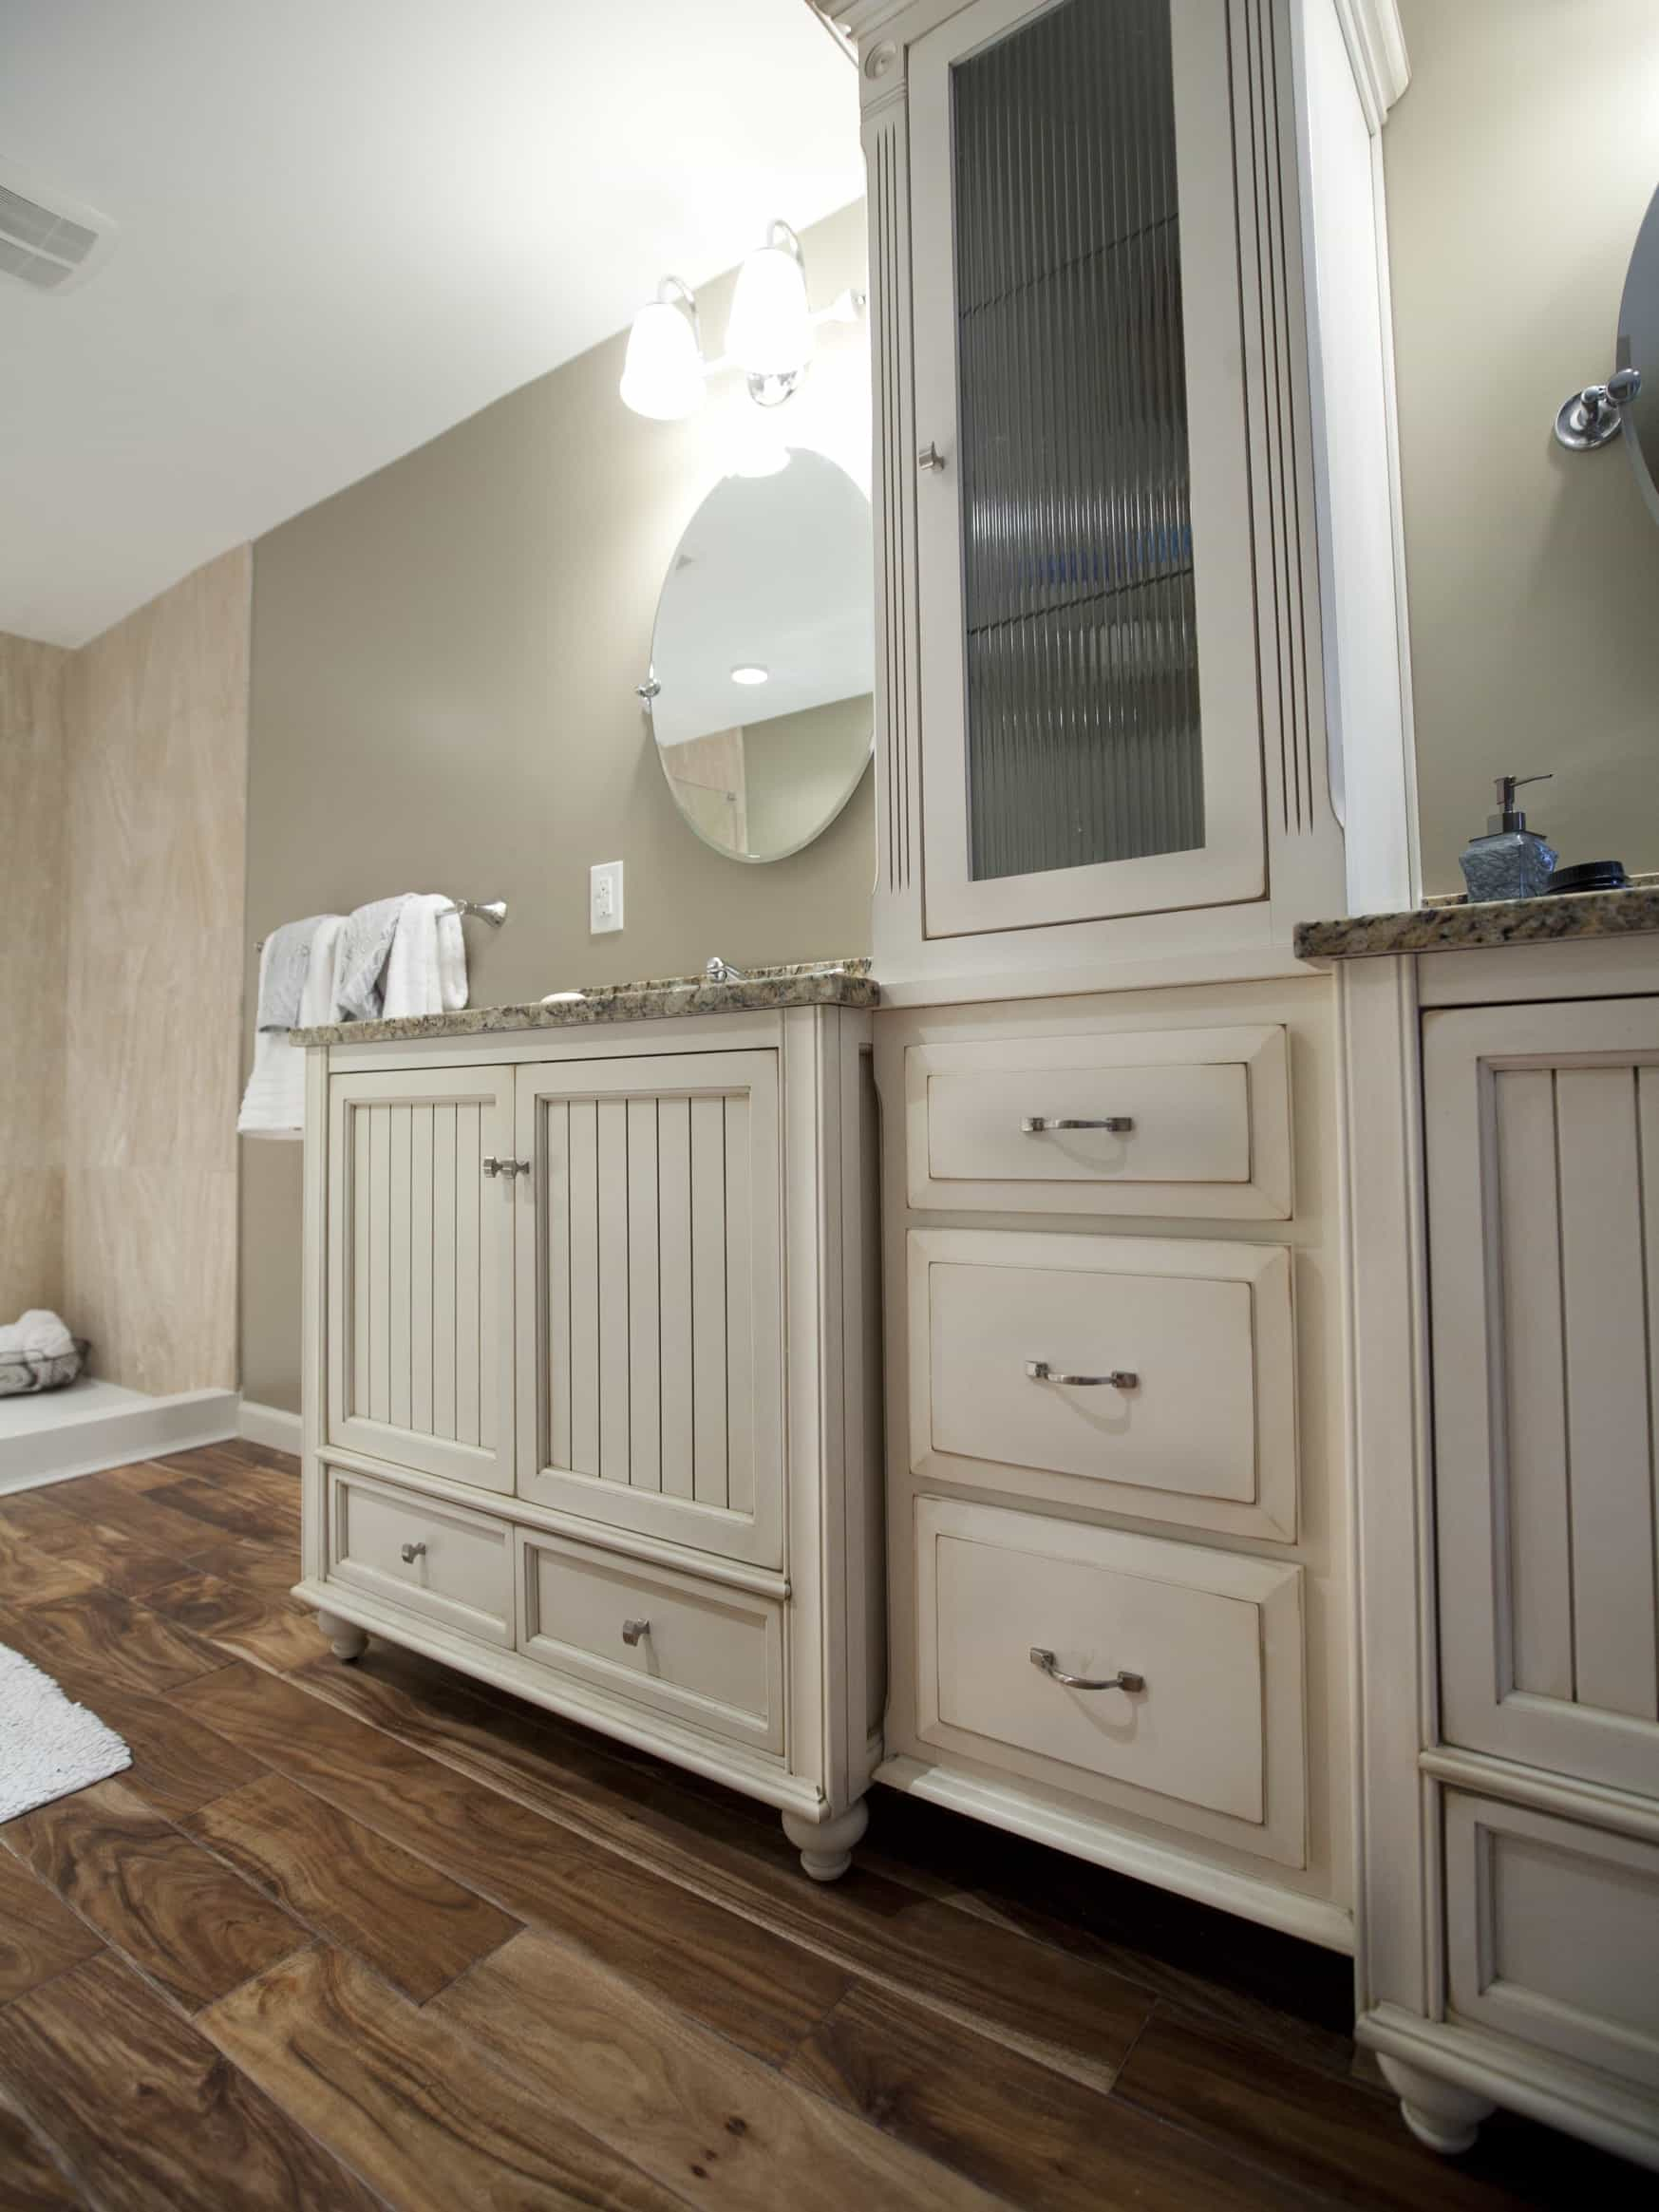 Featured Image of Cottage Twin Vanities With Round Mirrors And Cabinet Lighting